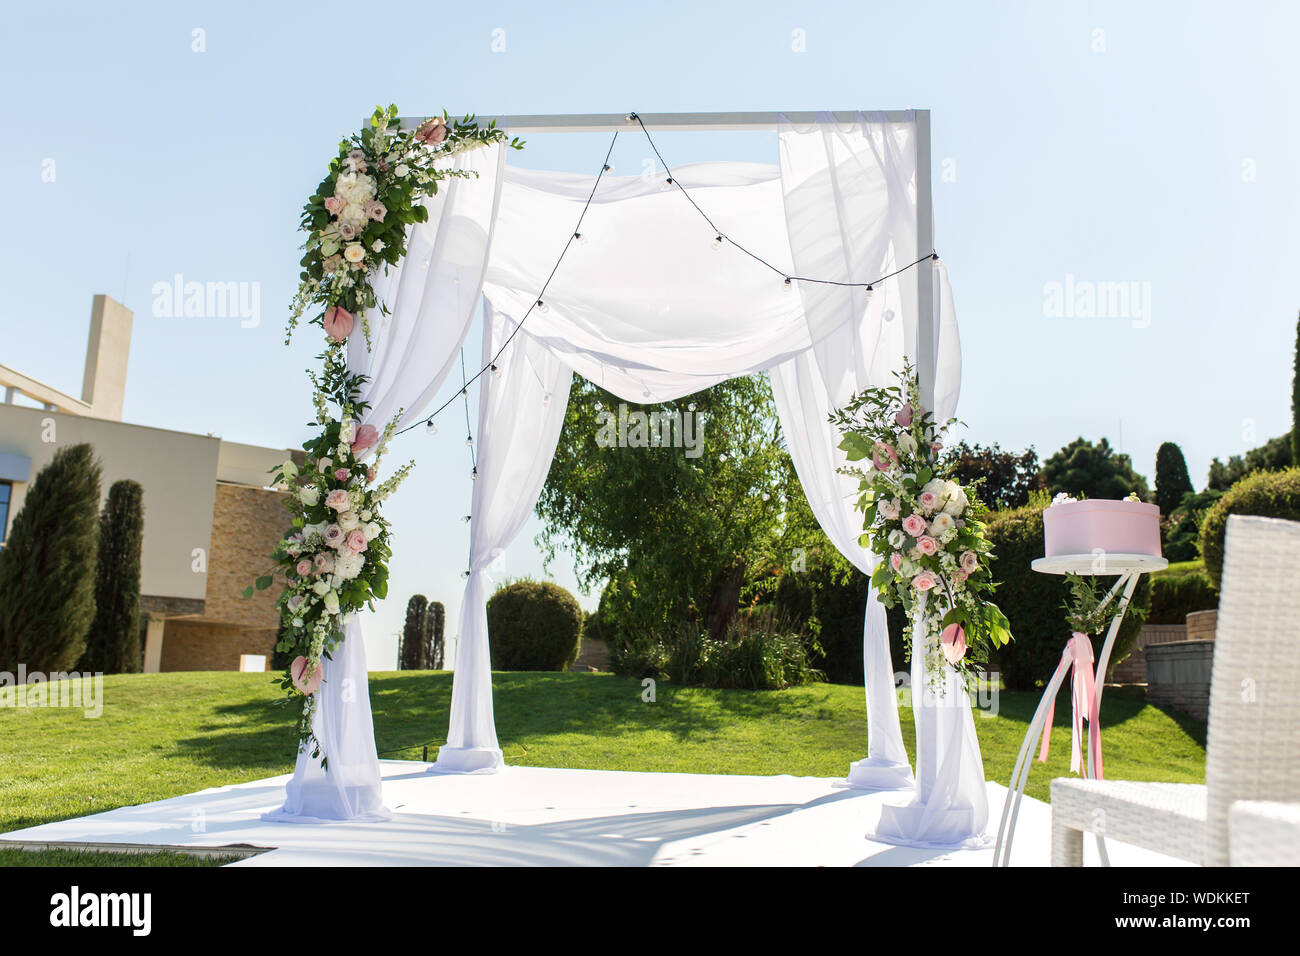 Beautiful Outgoing Wedding Set Up Jewish Hupa On Romantic Wedding Ceremony Wedding Outdoor On The Lawn Wedding Decor A Pink Box For Presents In Stock Photo Alamy